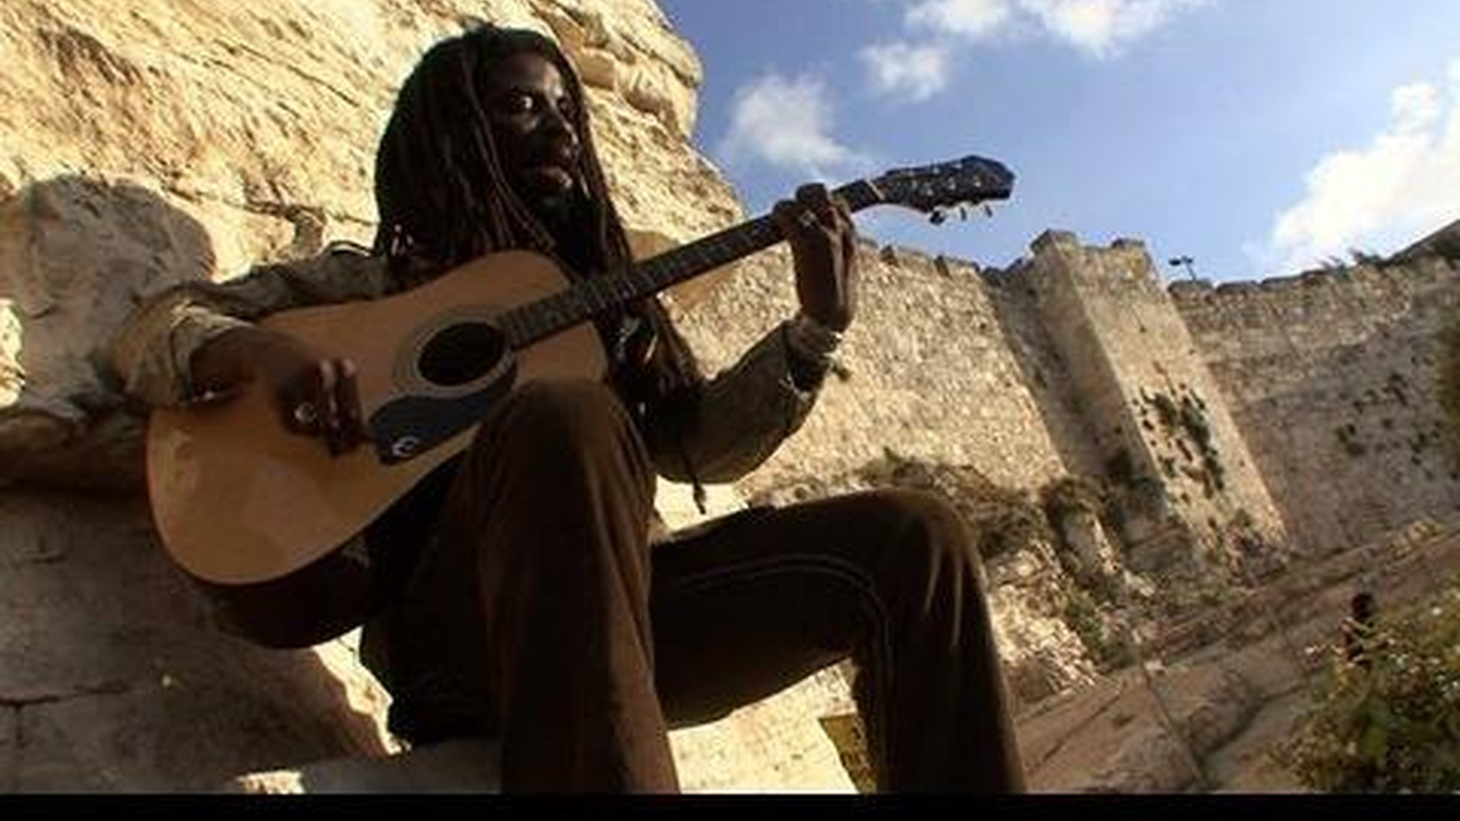 Ghanian superstar Rocky Dawuni melds reggae and African melodies and sprinkles them with positive and uplifting lyrics. Legends like Stevie Wonder and Peter Gabriel have joined him on stage and we'll hear why when Dawuni performs on Morning Becomes Eclectic at 11:15am.